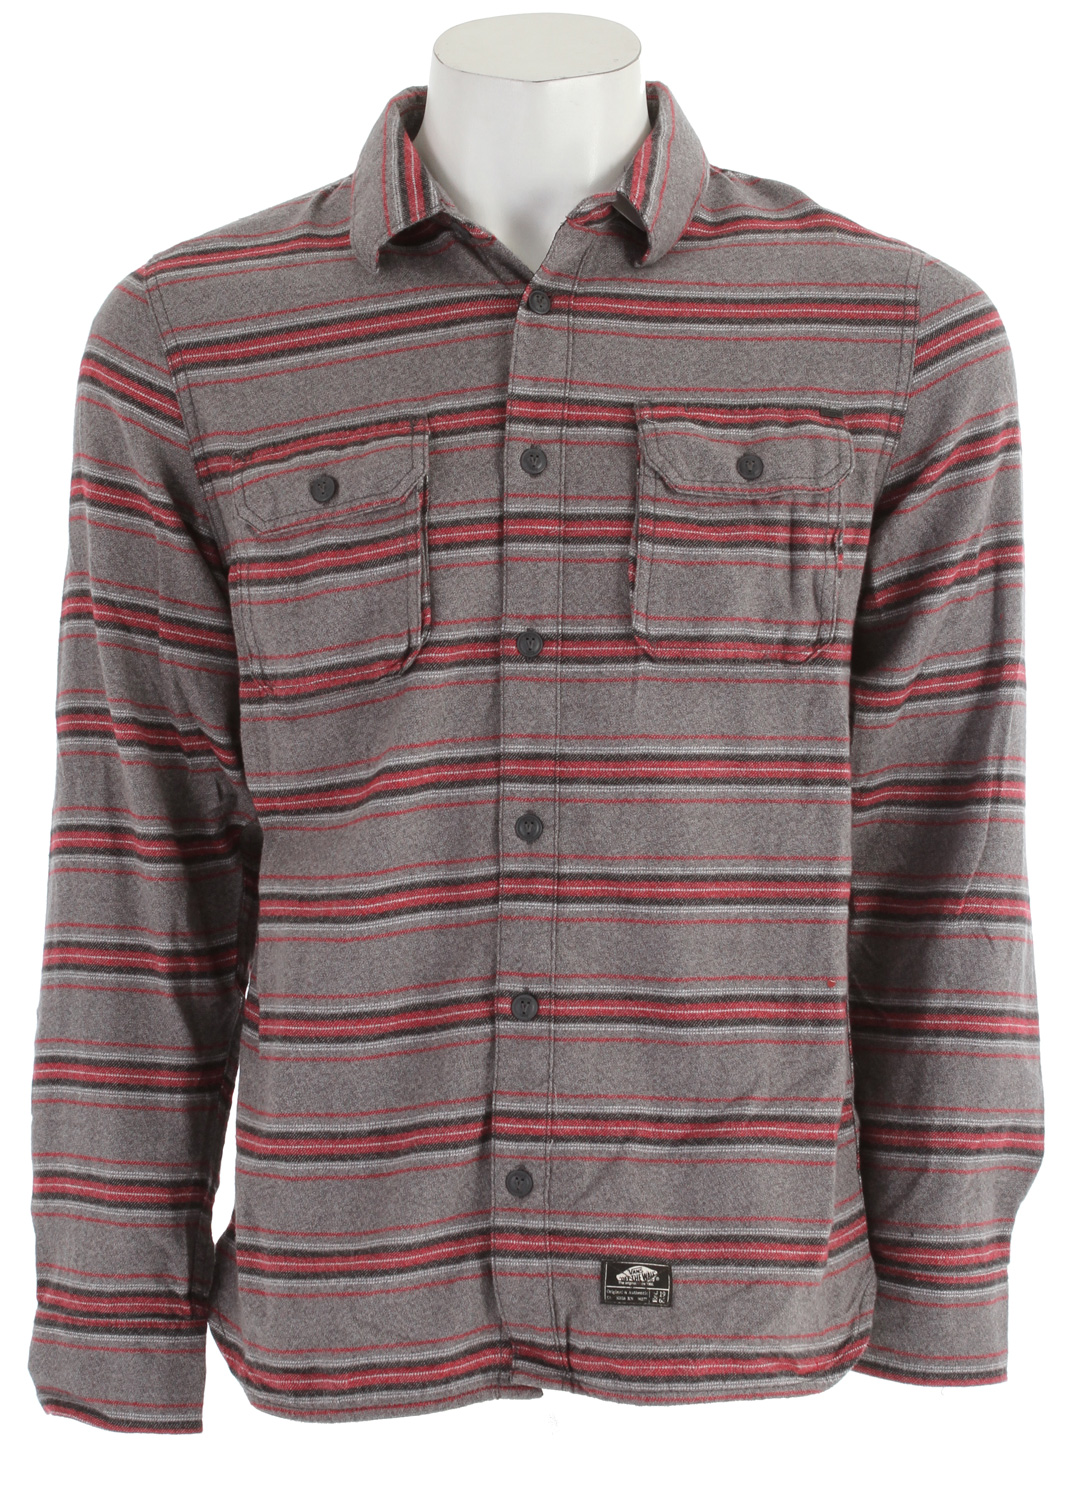 Skateboard Key Features of the Vans Marr Flannel Shirt: 100% Cotton long sleeve unbrushed ? annel with double chest pockets with Vans ? ag label Tahoe trim fabric at inner yoke Vans clamp label on bottom placket V-stitch detail on back yoke Slim Fit - $33.95